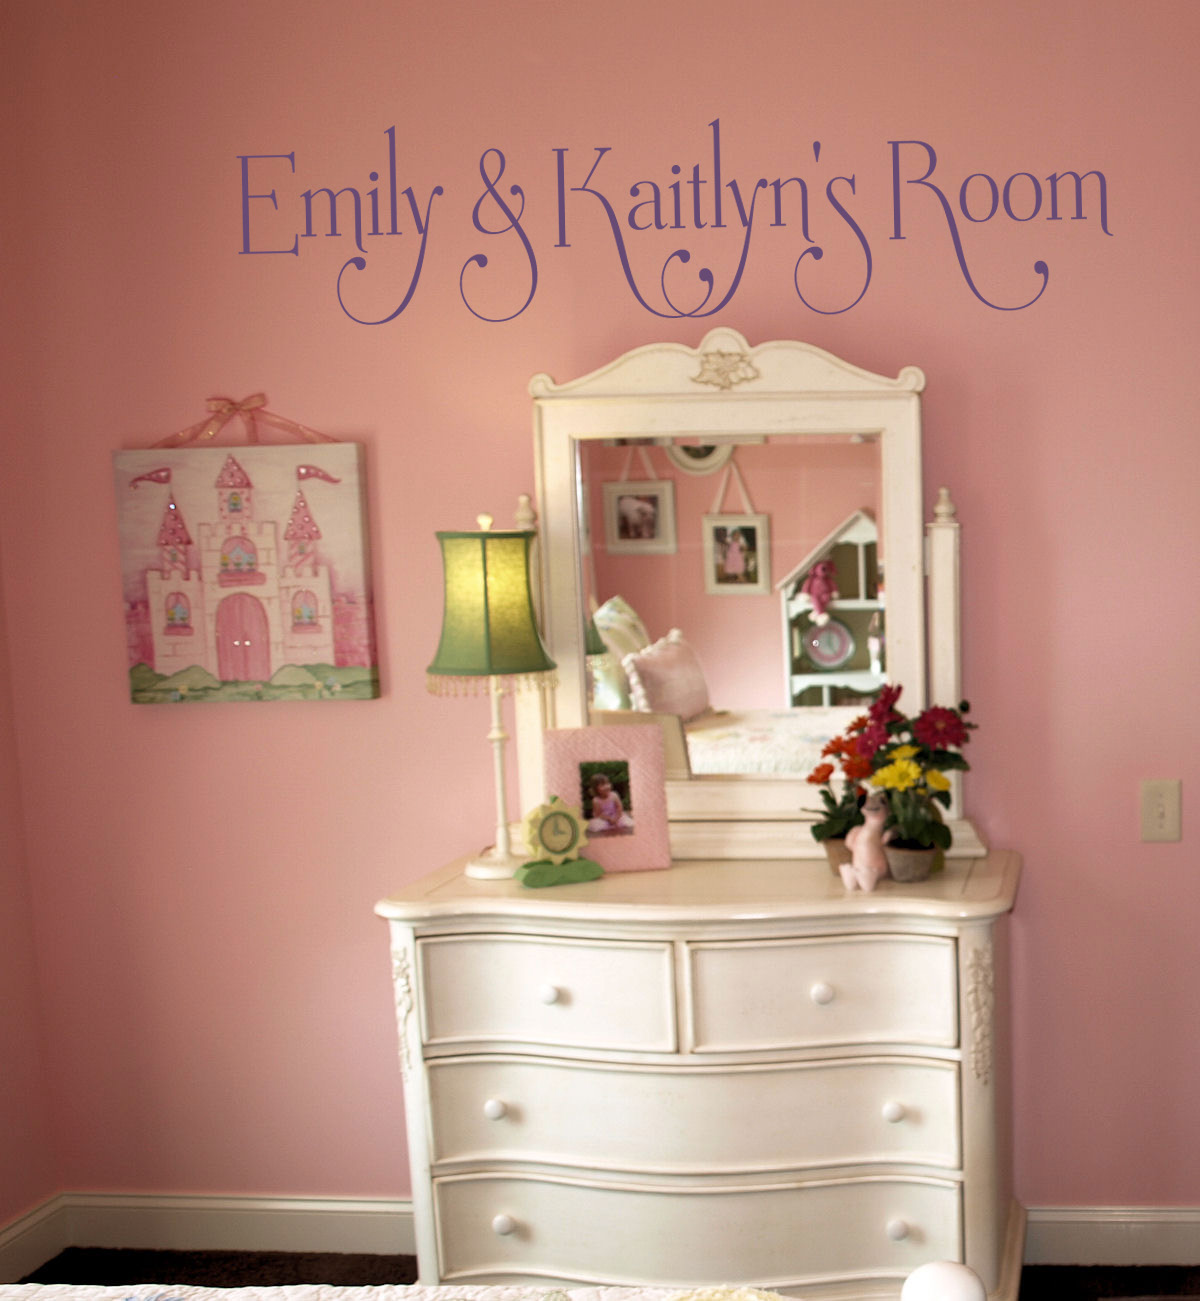 Swash Names Personalized Wall Decal